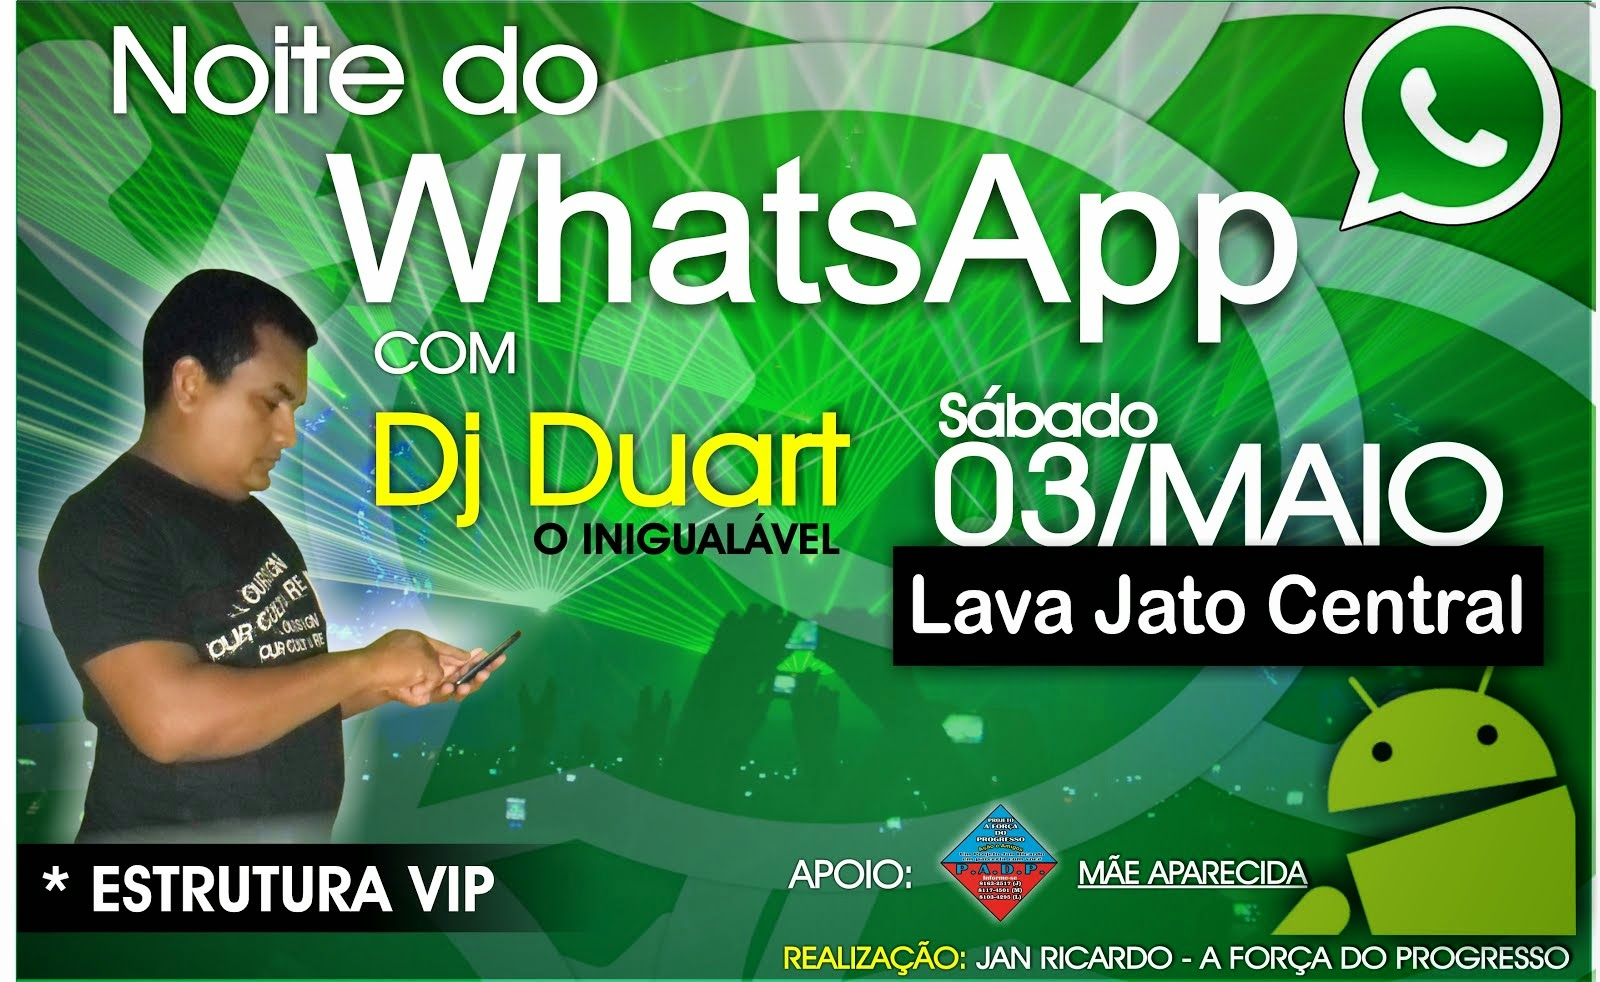 '03/05 - Noite do WhatsApp'